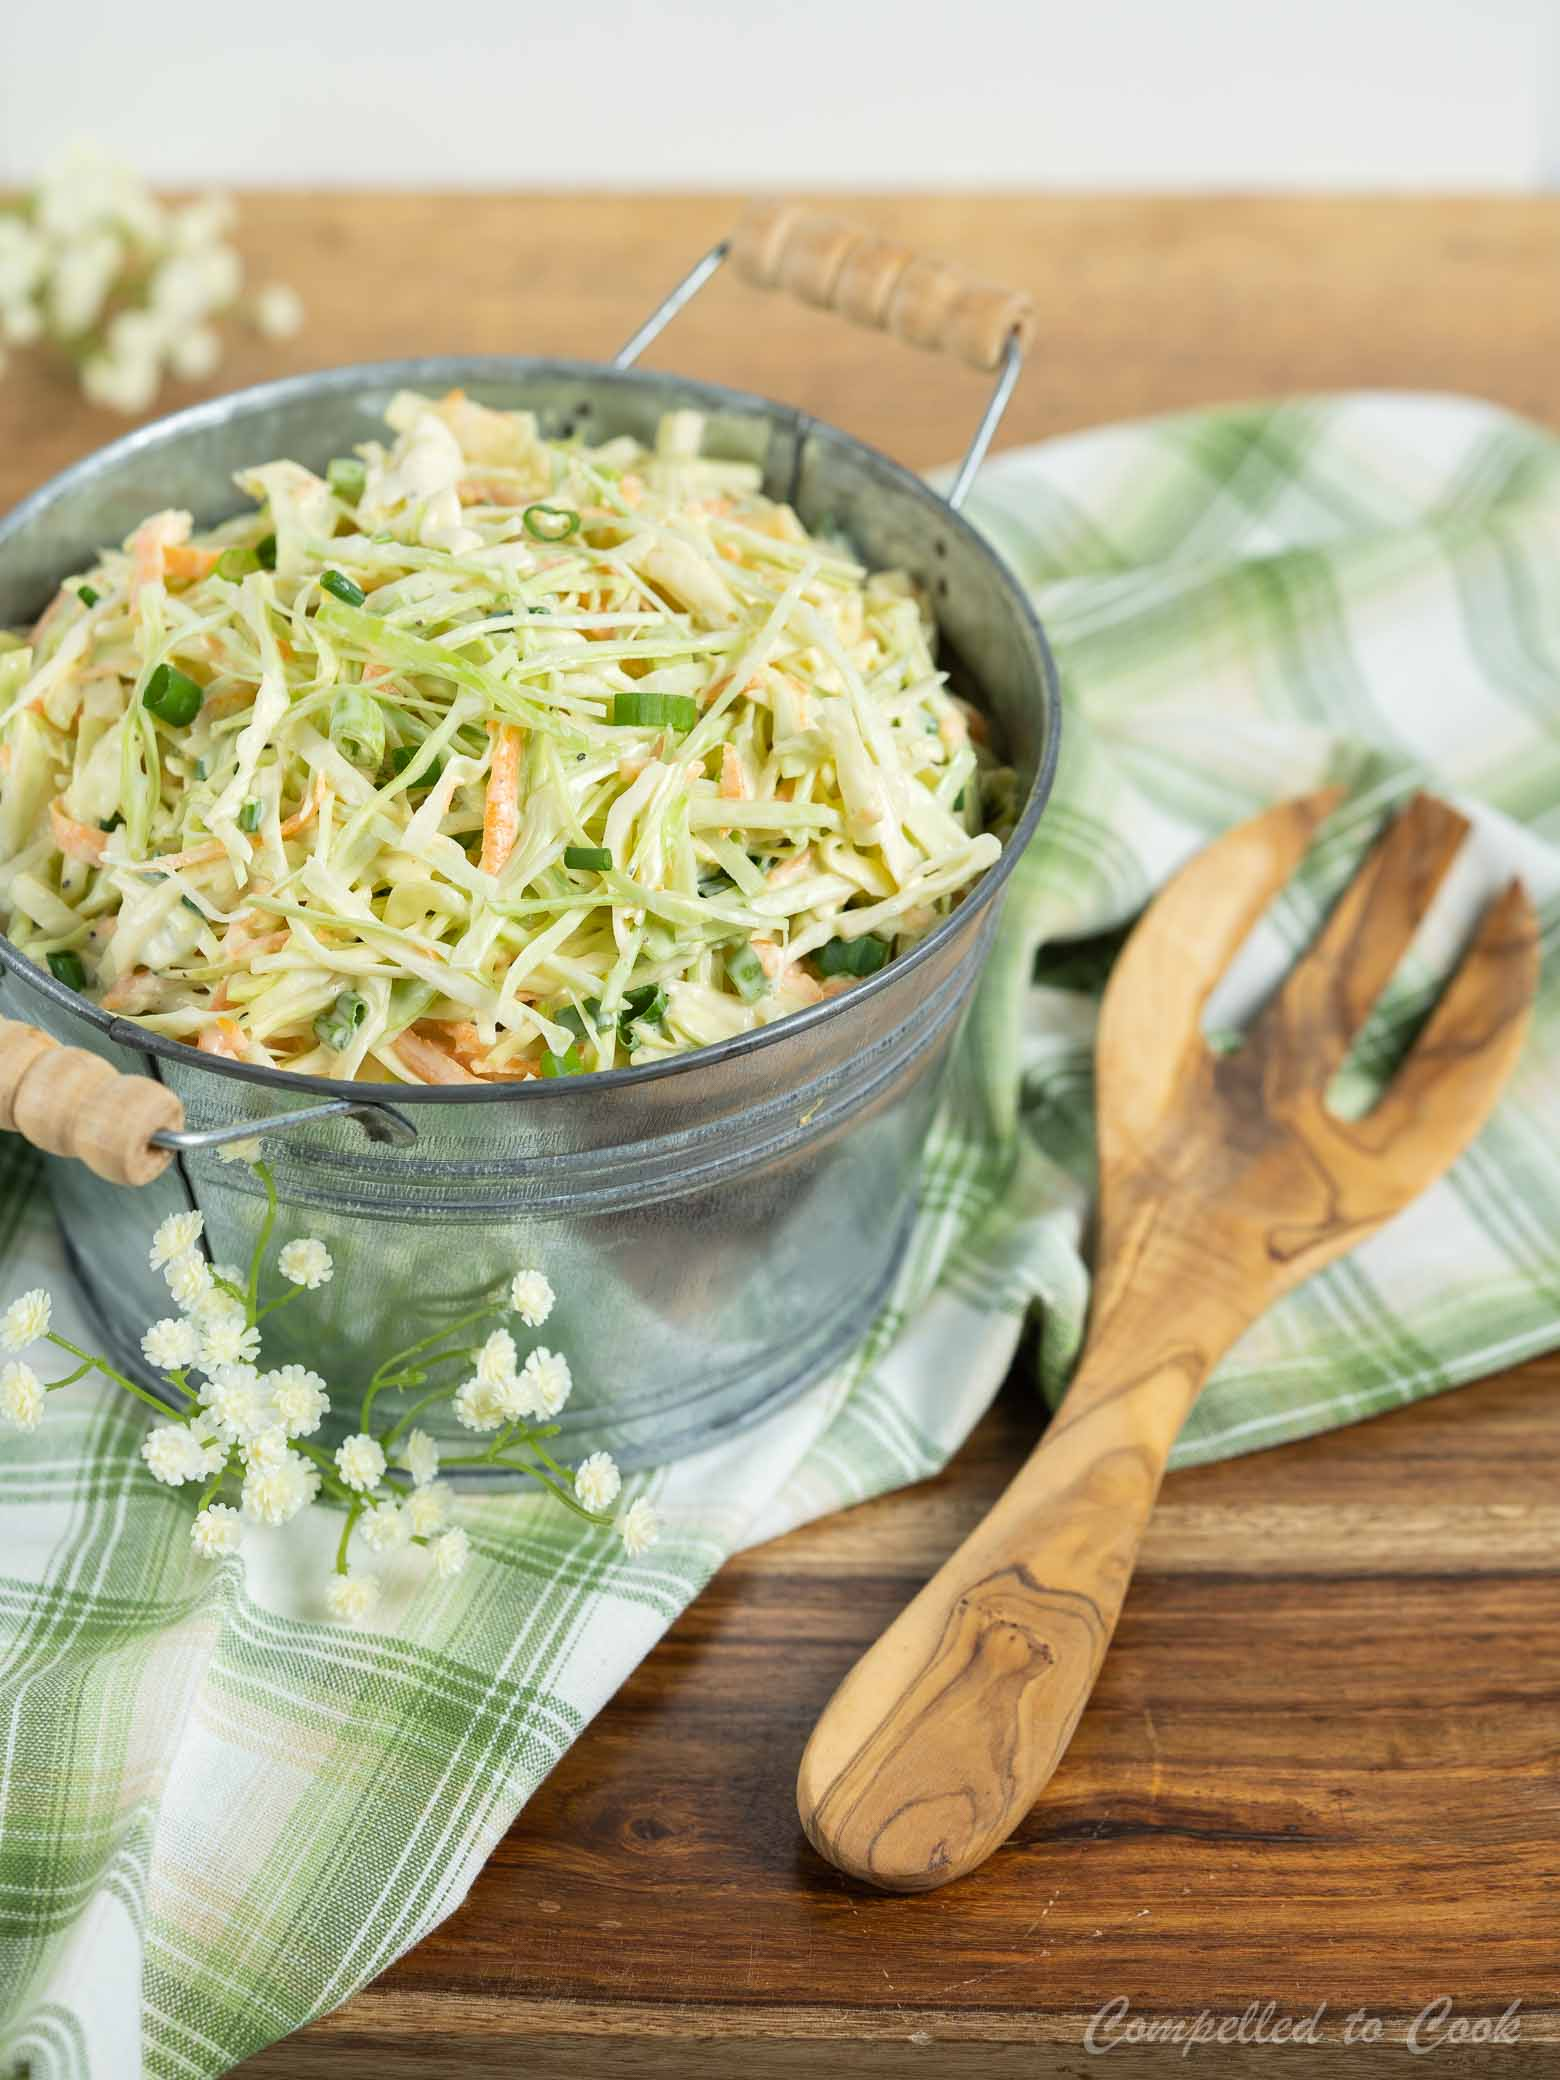 A small metal tub filled with Wasabi Slaw is resting on a checkered white and green kitchen towel.